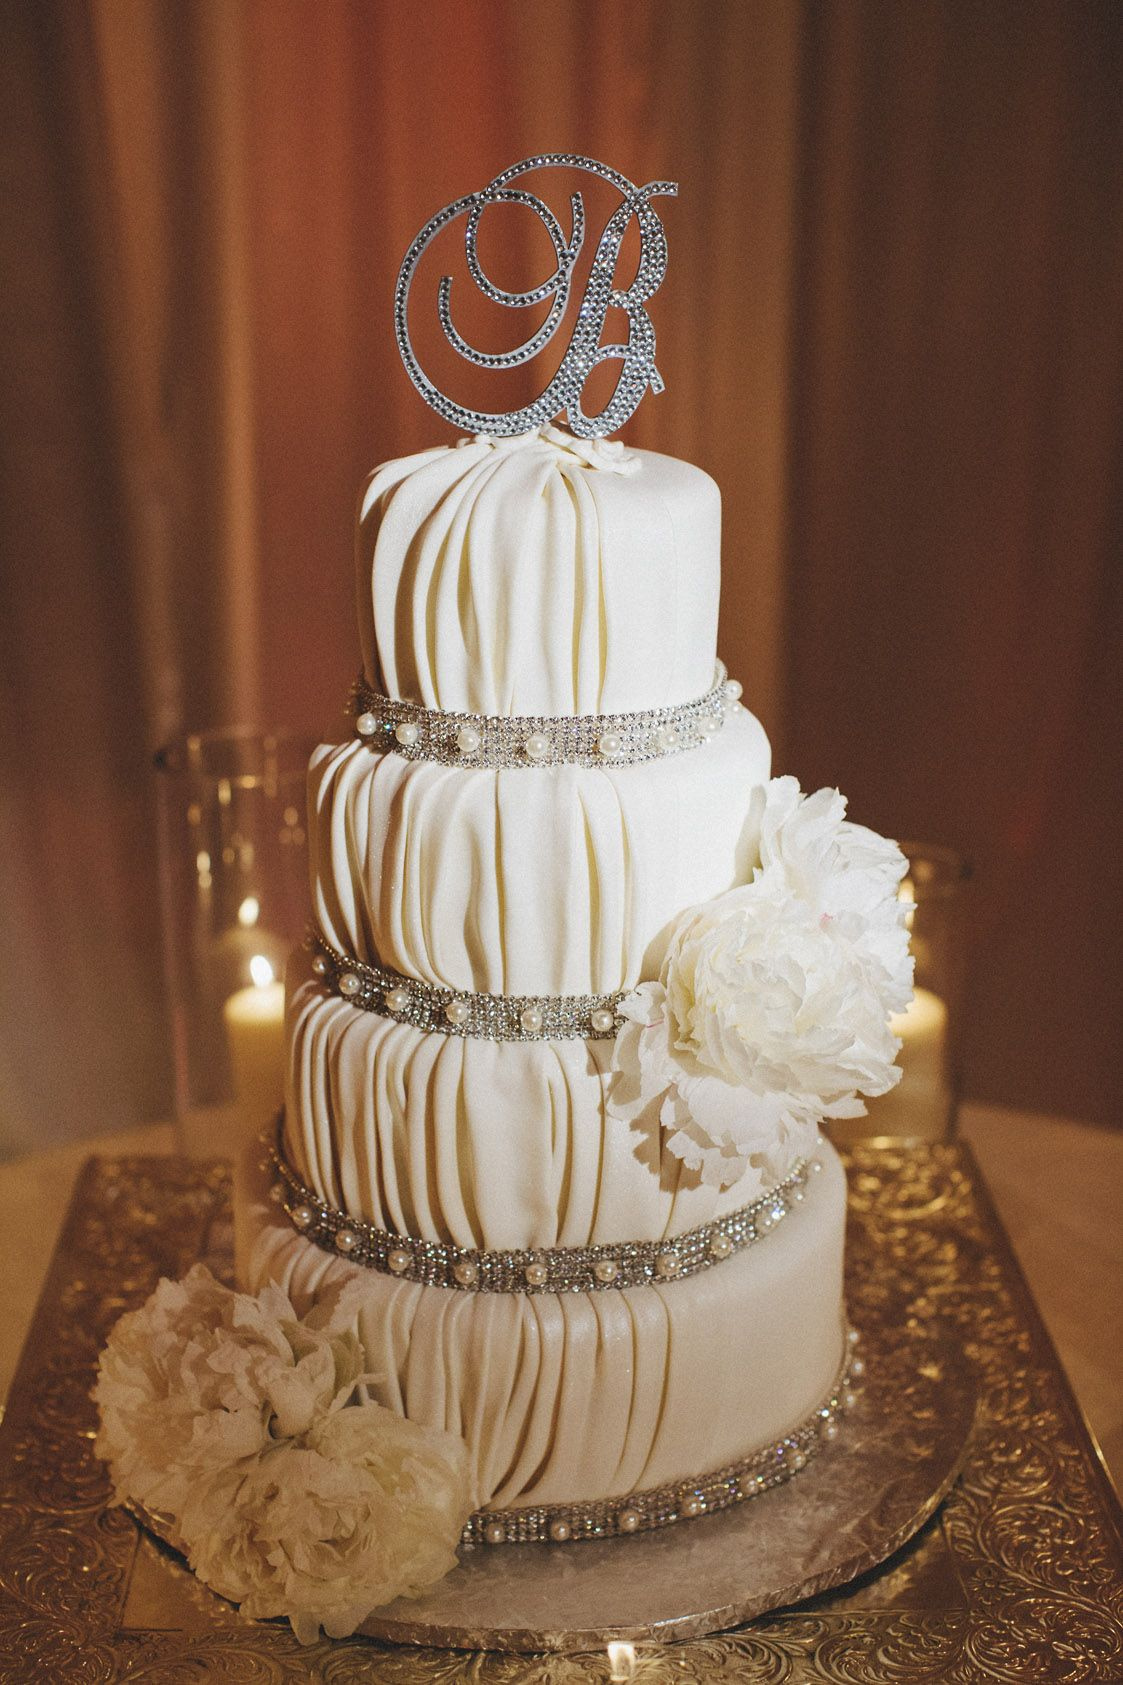 wedding cakes in lagunbeach ca%0A Pin Spot Lighting Packages for Weddings and Special EventsEvent Decor  LightingOrange County Los Angeles Event Lighting PackagesElevated Pulse